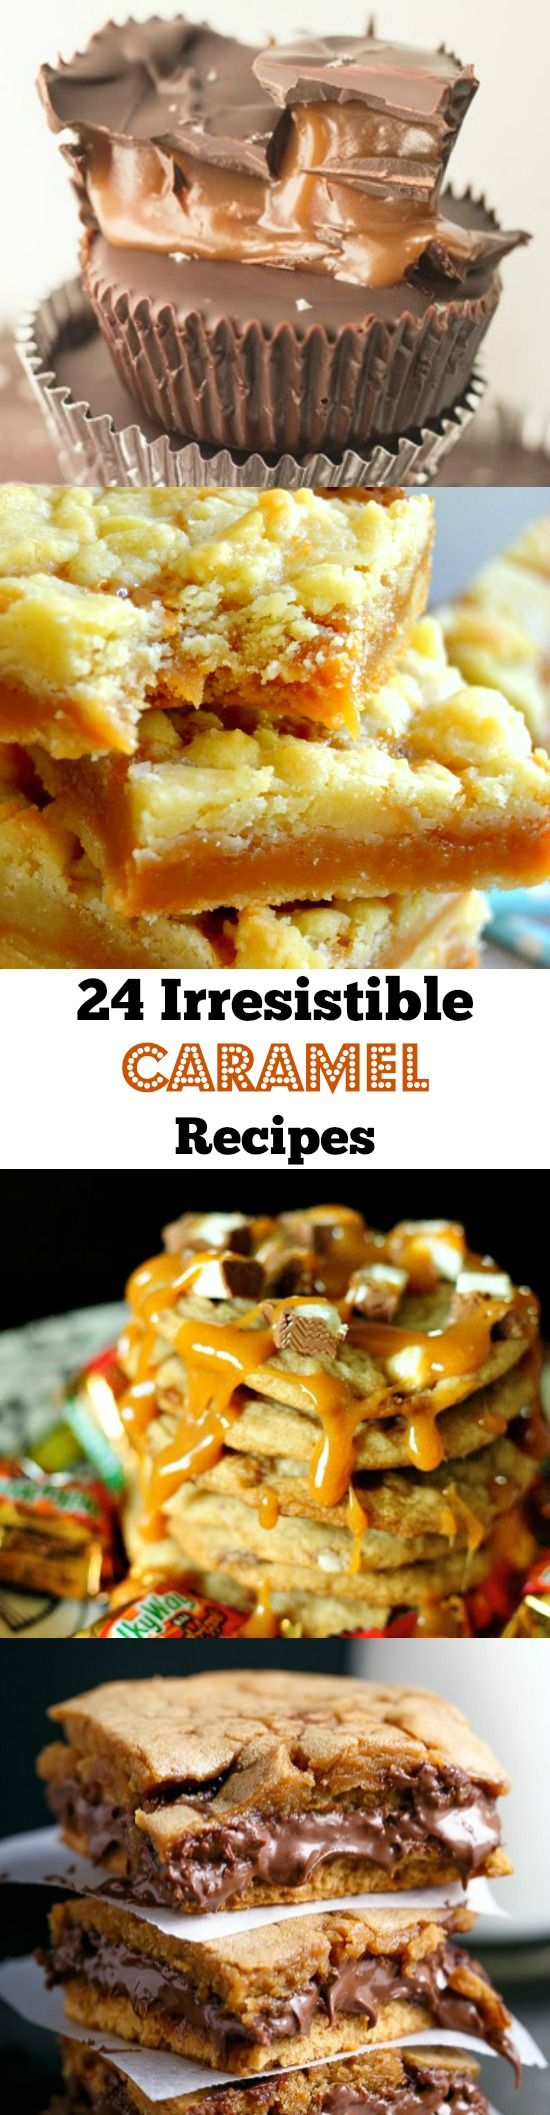 Seriously irresistible ooey, gooey caramel recipes you just HAVE to try!!  Thanksgiving Desserts   Christmas Desserts